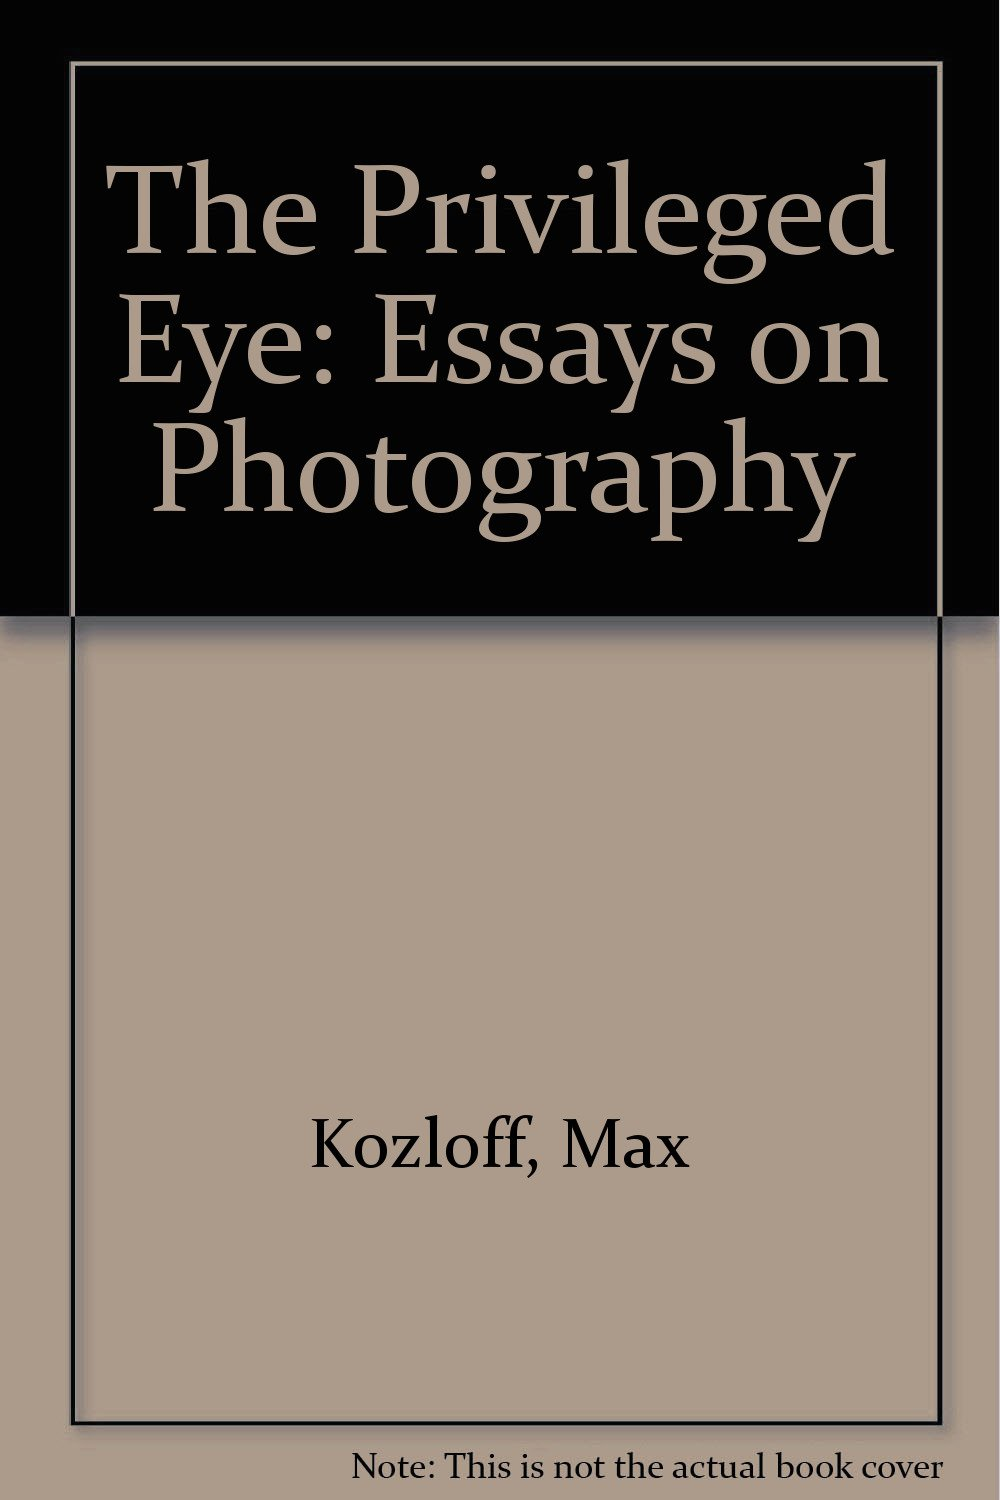 the privileged eye essays on photography max kozloff the privileged eye essays on photography max kozloff 9780826308917 com books